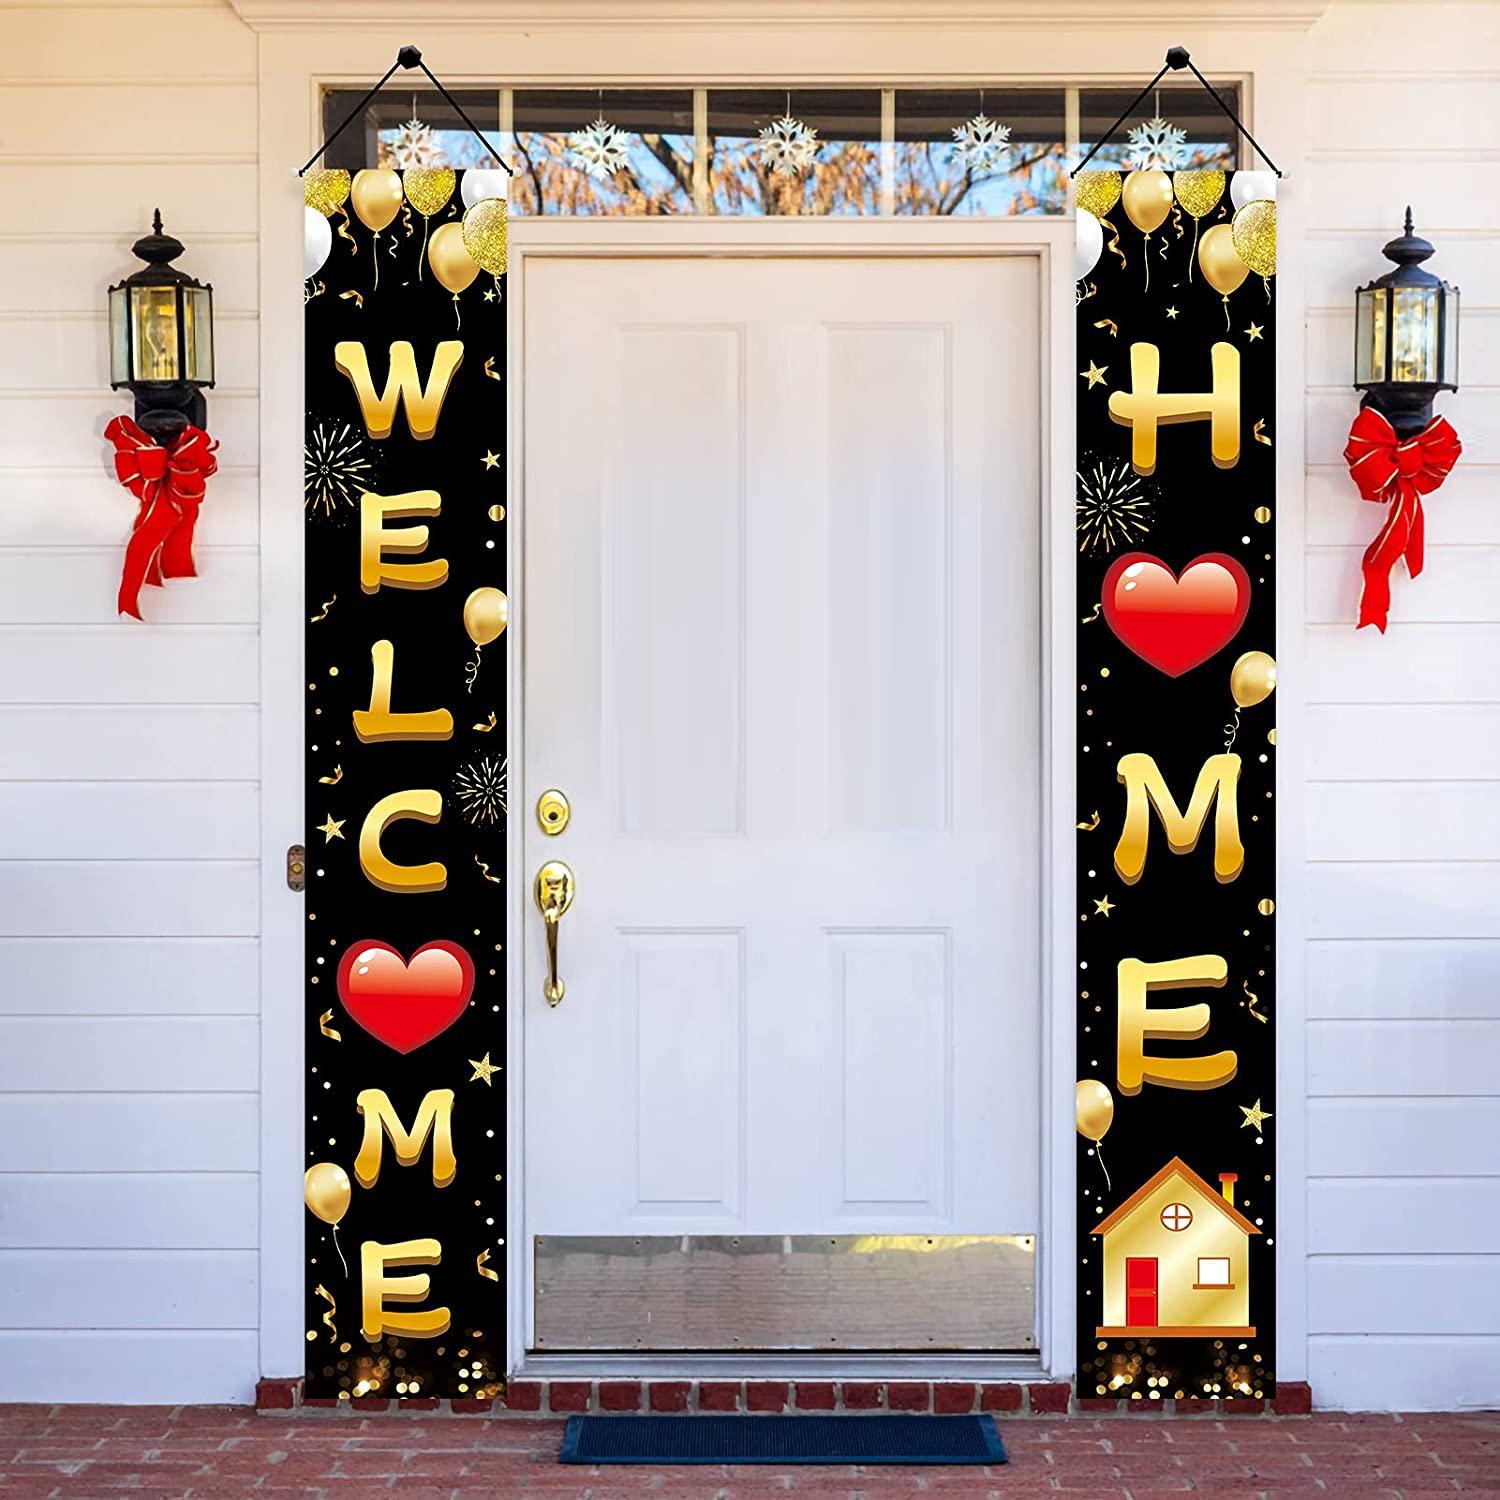 Welcome Home Door Banner Decoration, Black Gold Welcome Back Home Porch Banner for Outdoor Decor, Military Homecoming Deployment Returning Party Supplies